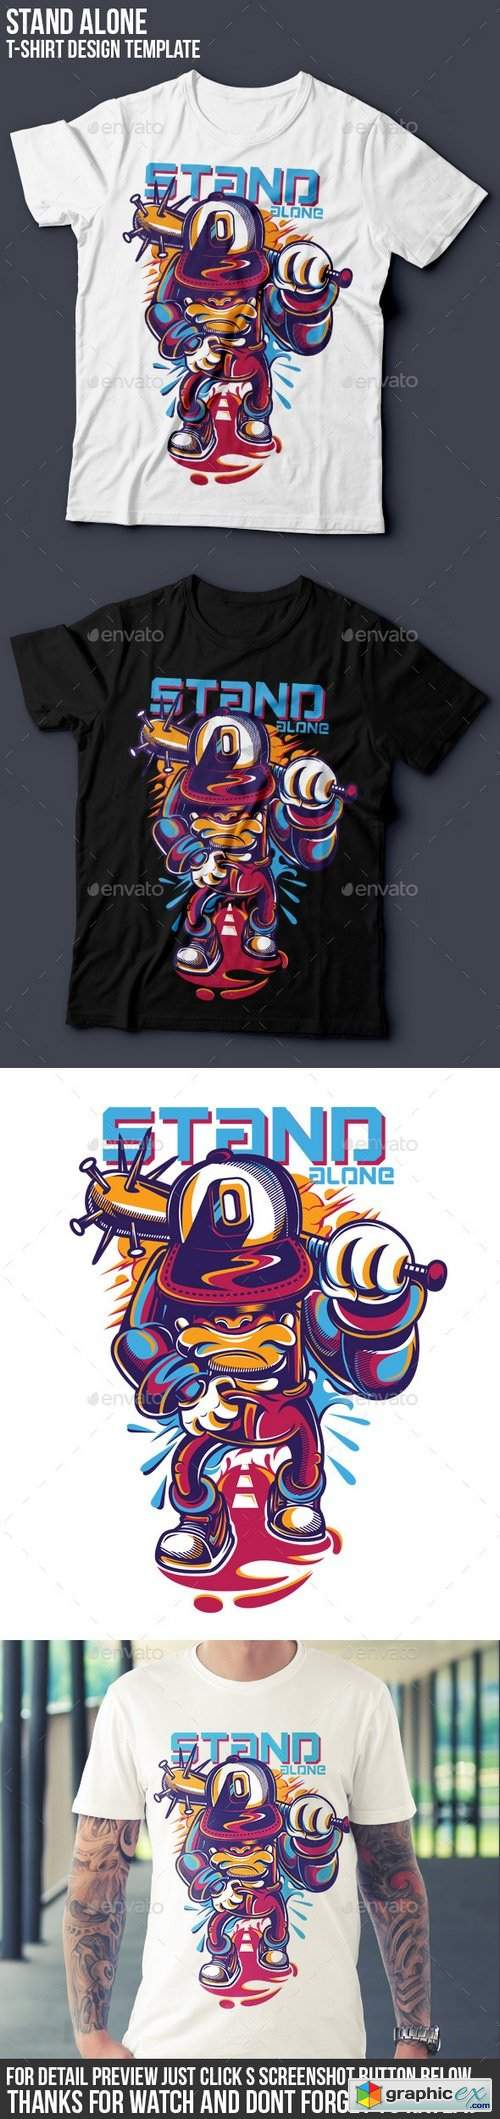 Stand Alone T-Shirt Design